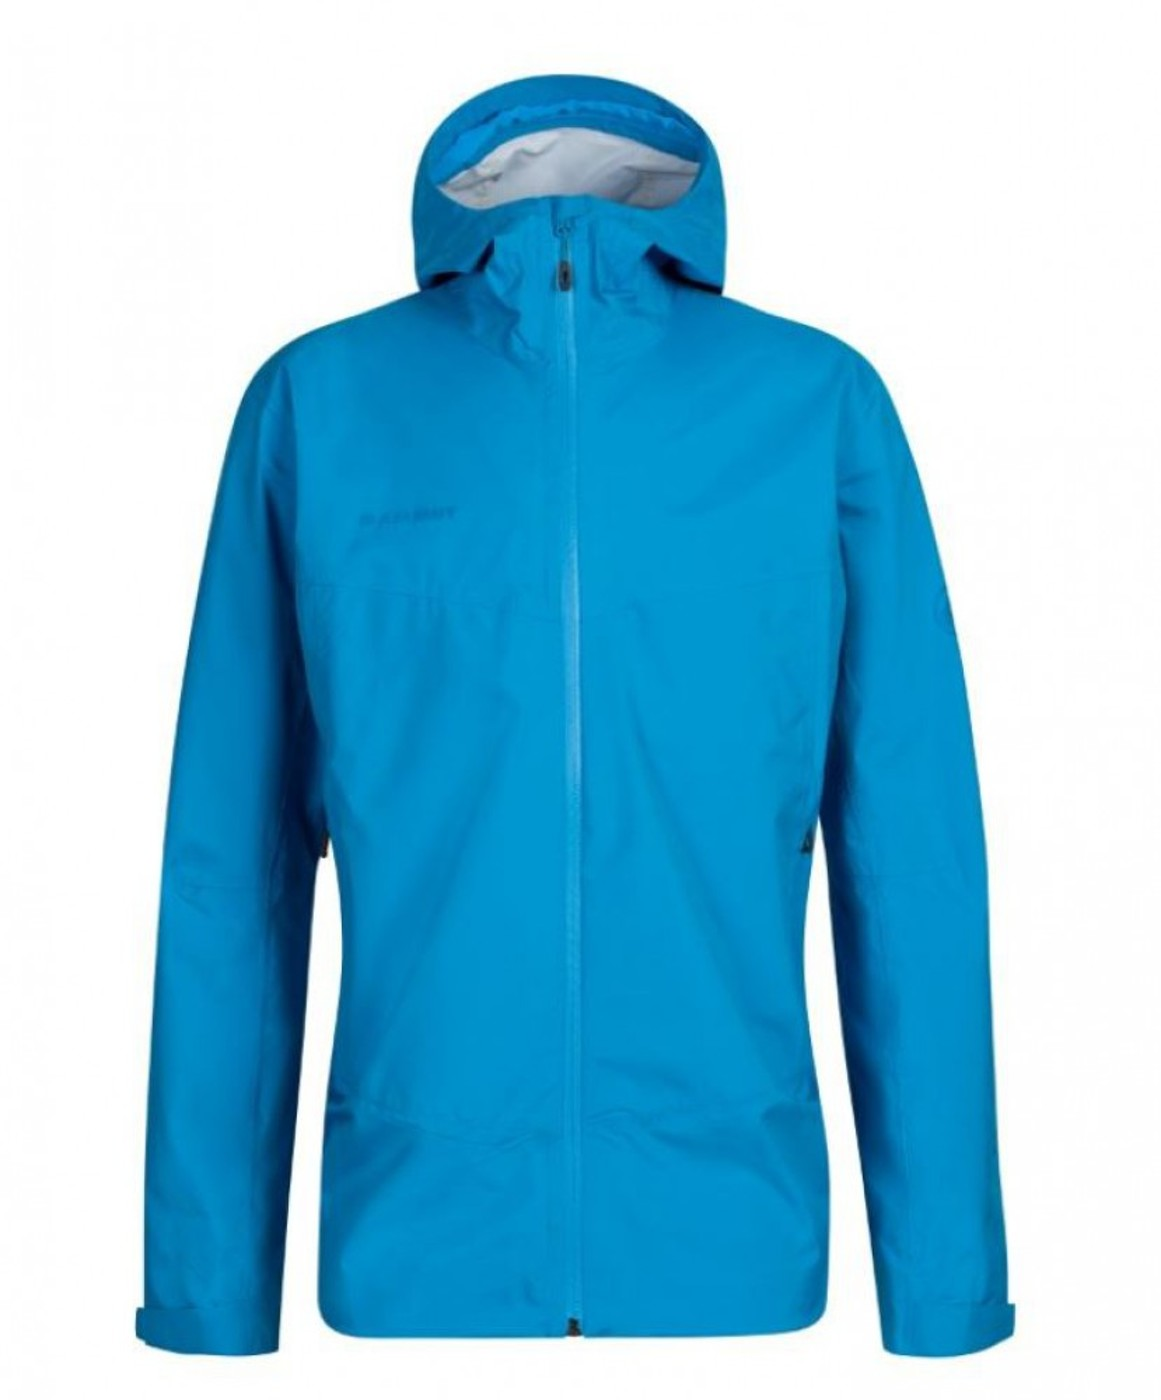 MAMMUT ALBULA IN HOODED JACKED - Herren